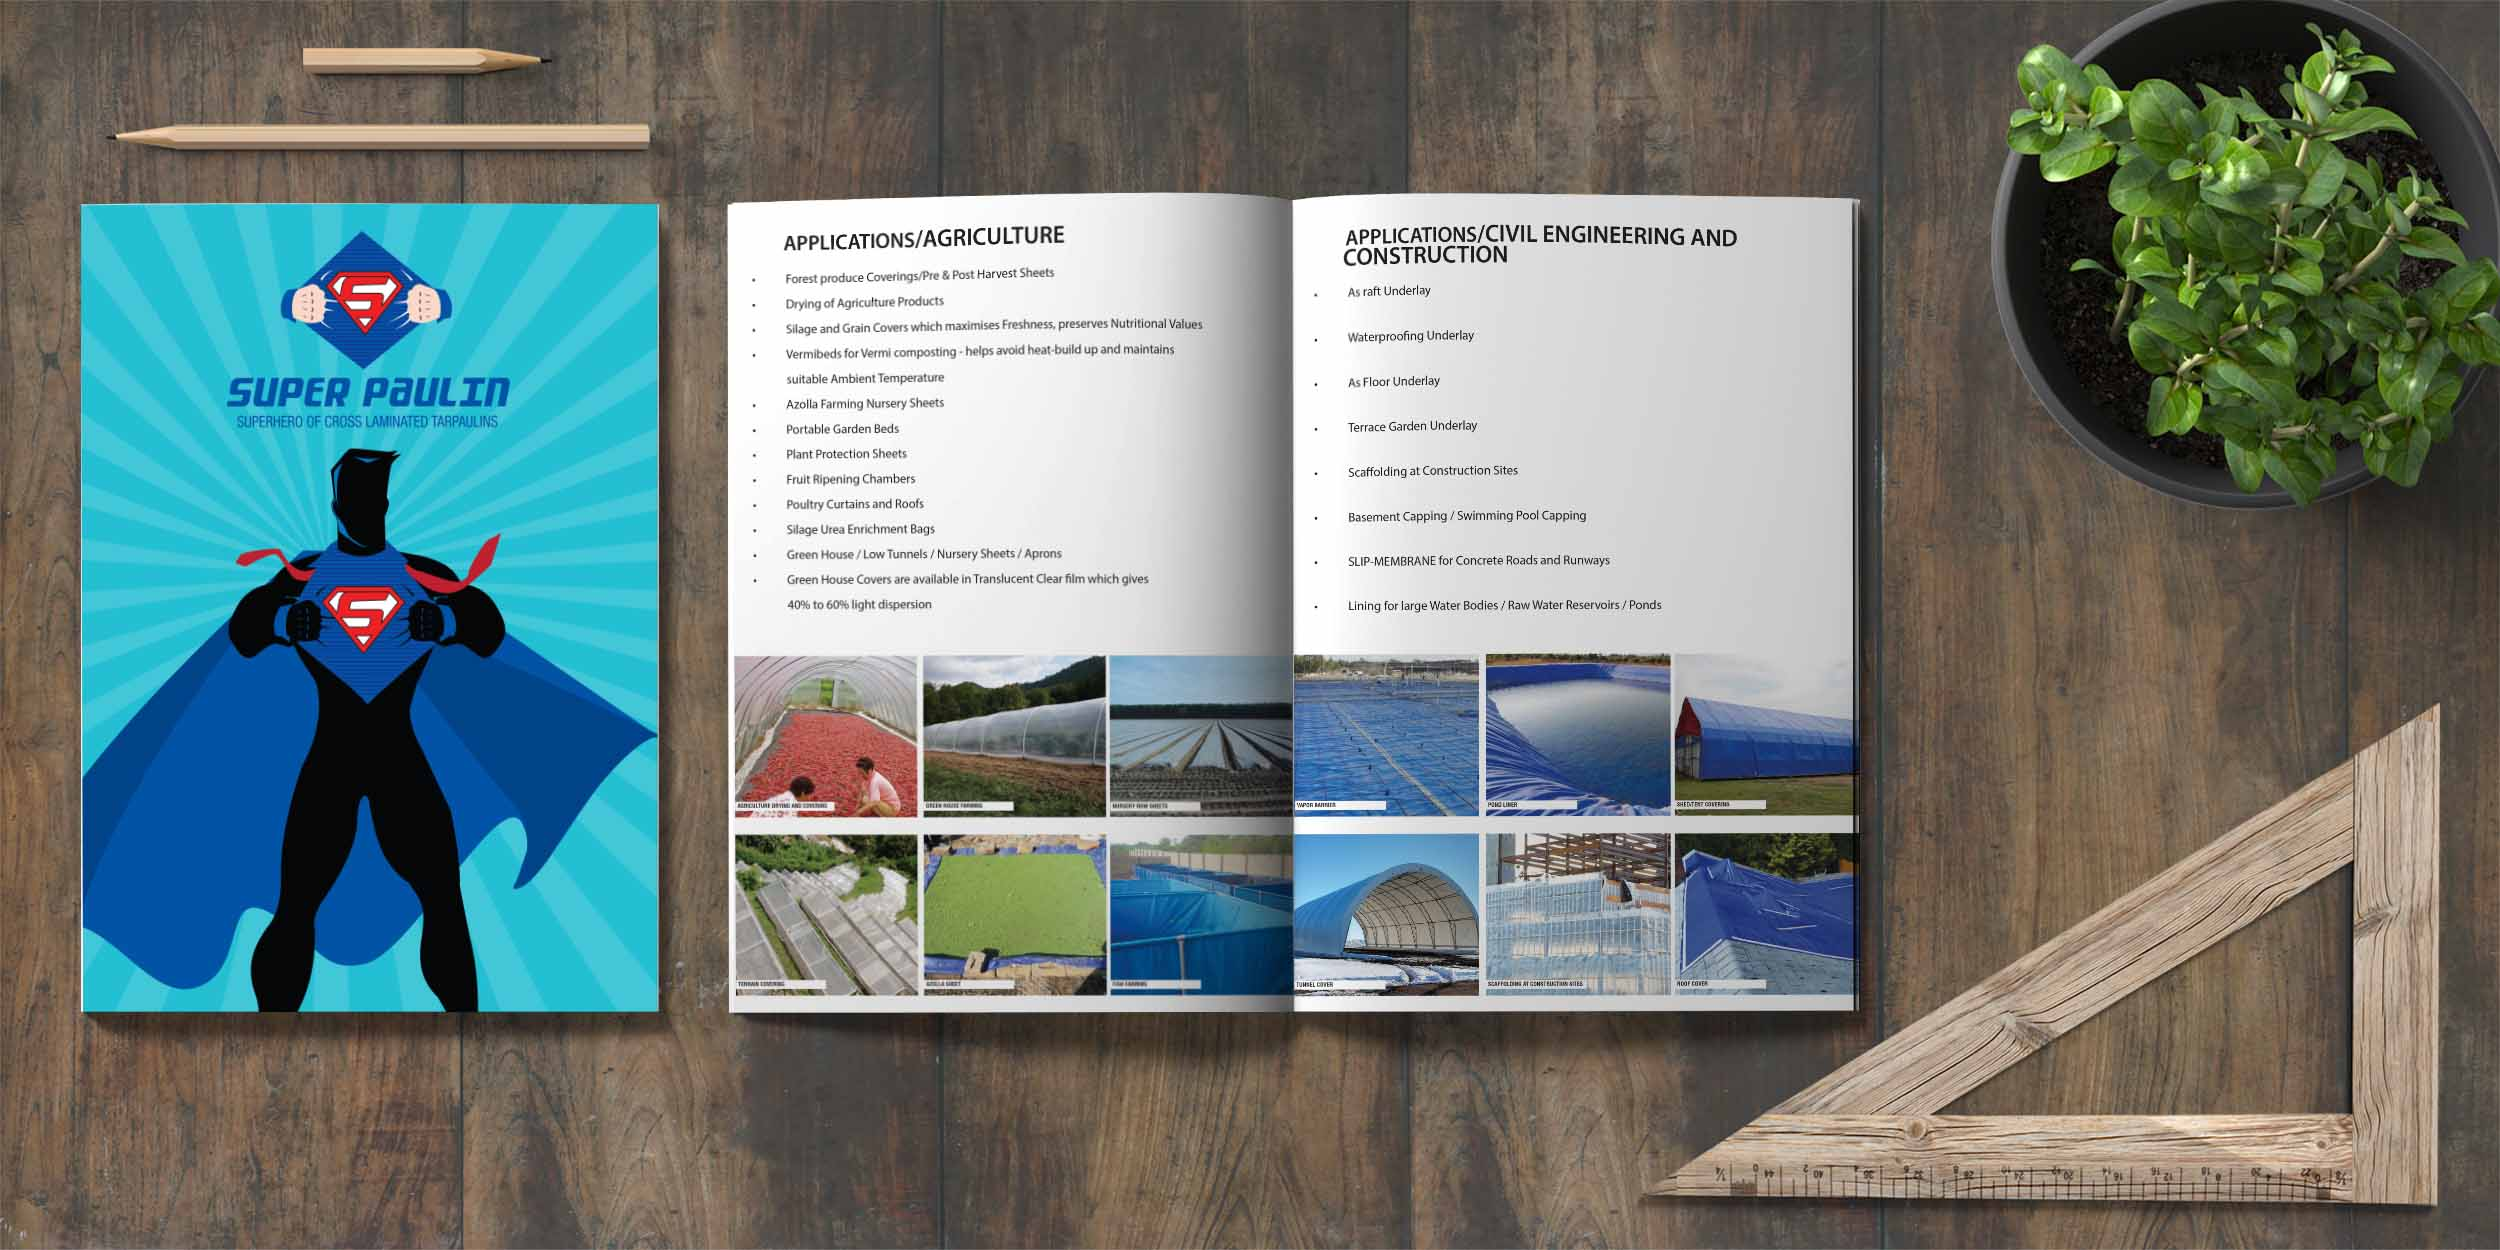 Super Paulin Brochure Design